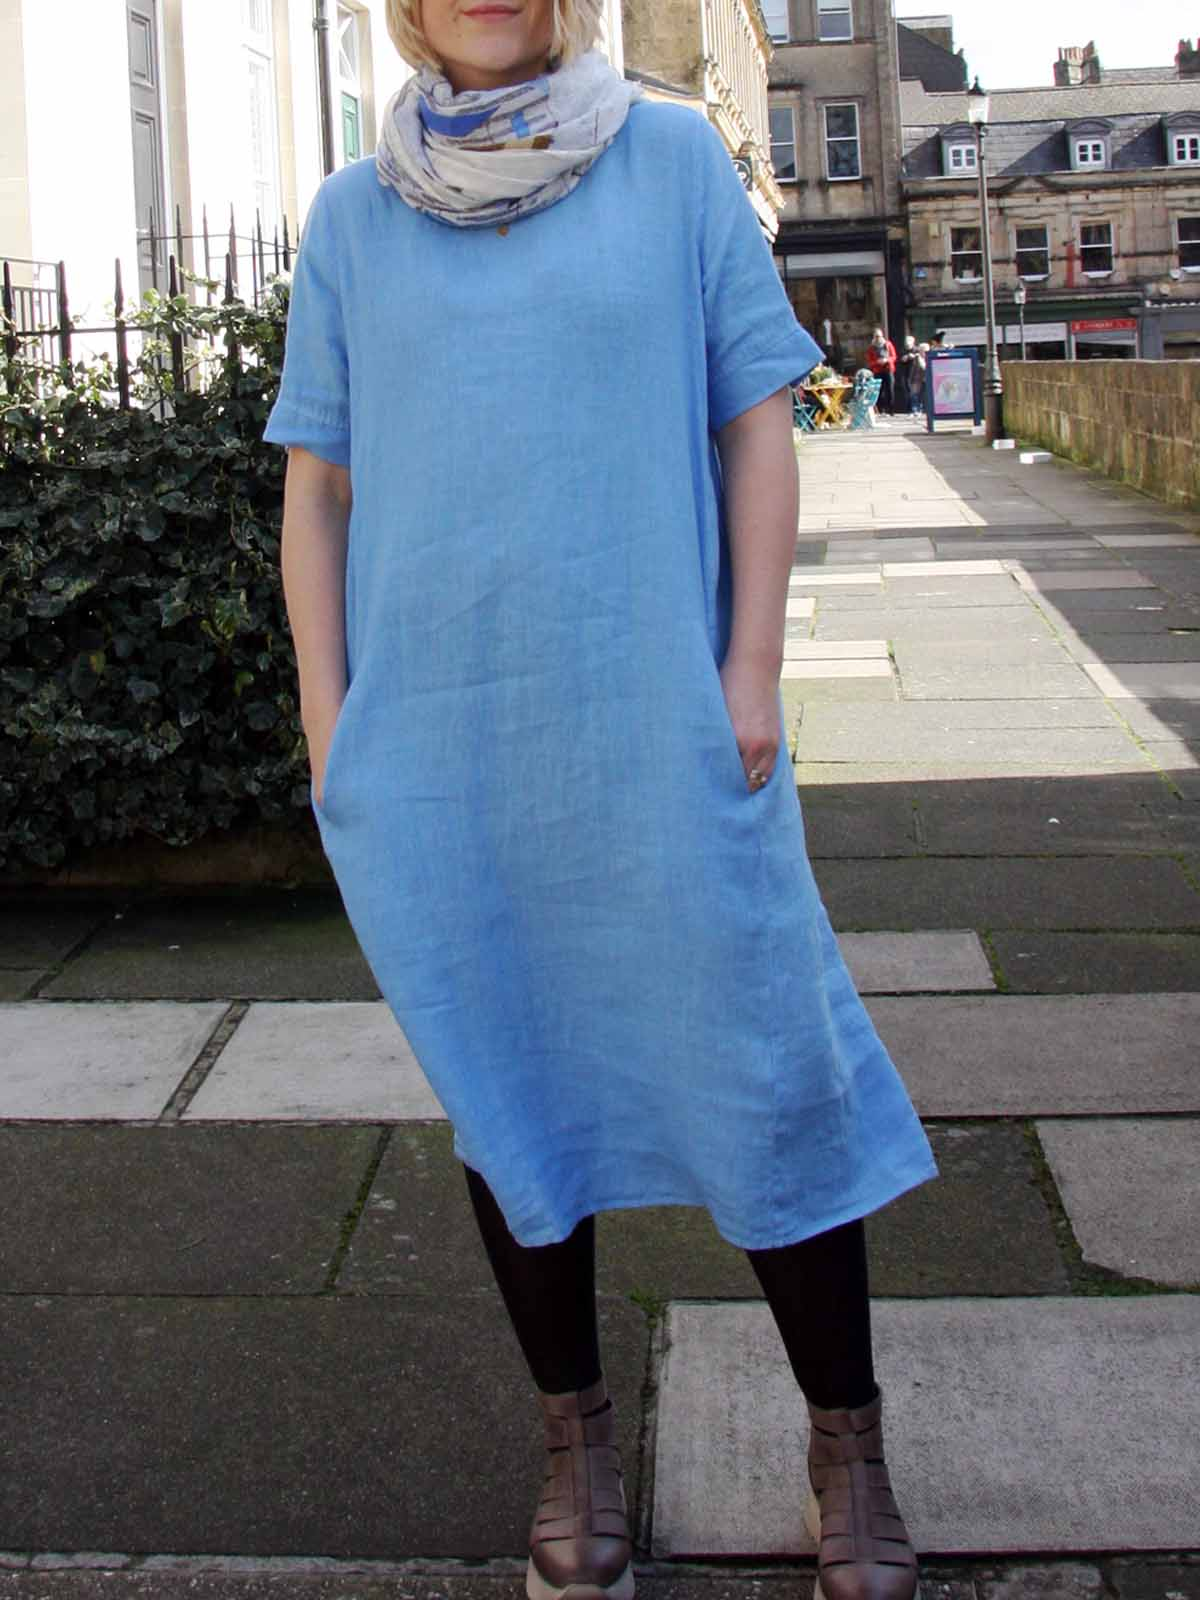 Yellow Label Linen Dress in Blue or L.Turquoise, Dresses, Yellow Label, Blue Women - Blue Women's Clothing